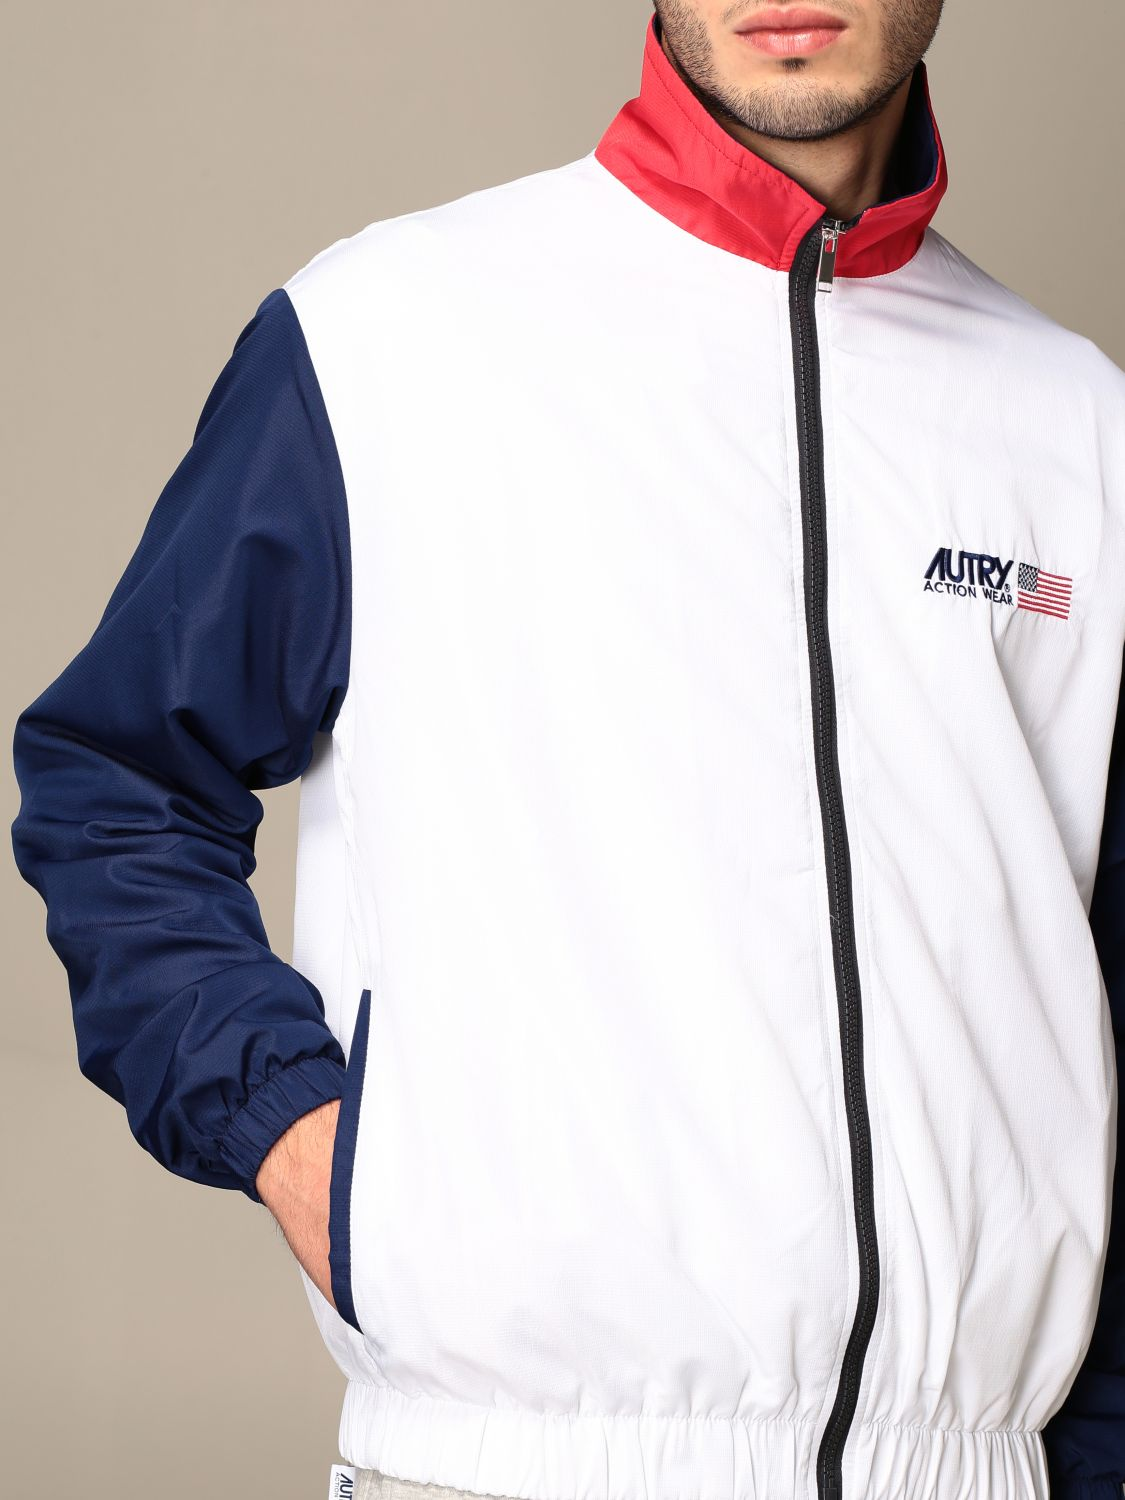 Giacca Autry: Giacca con zip Capsule Open Autry in cotone bianco 5